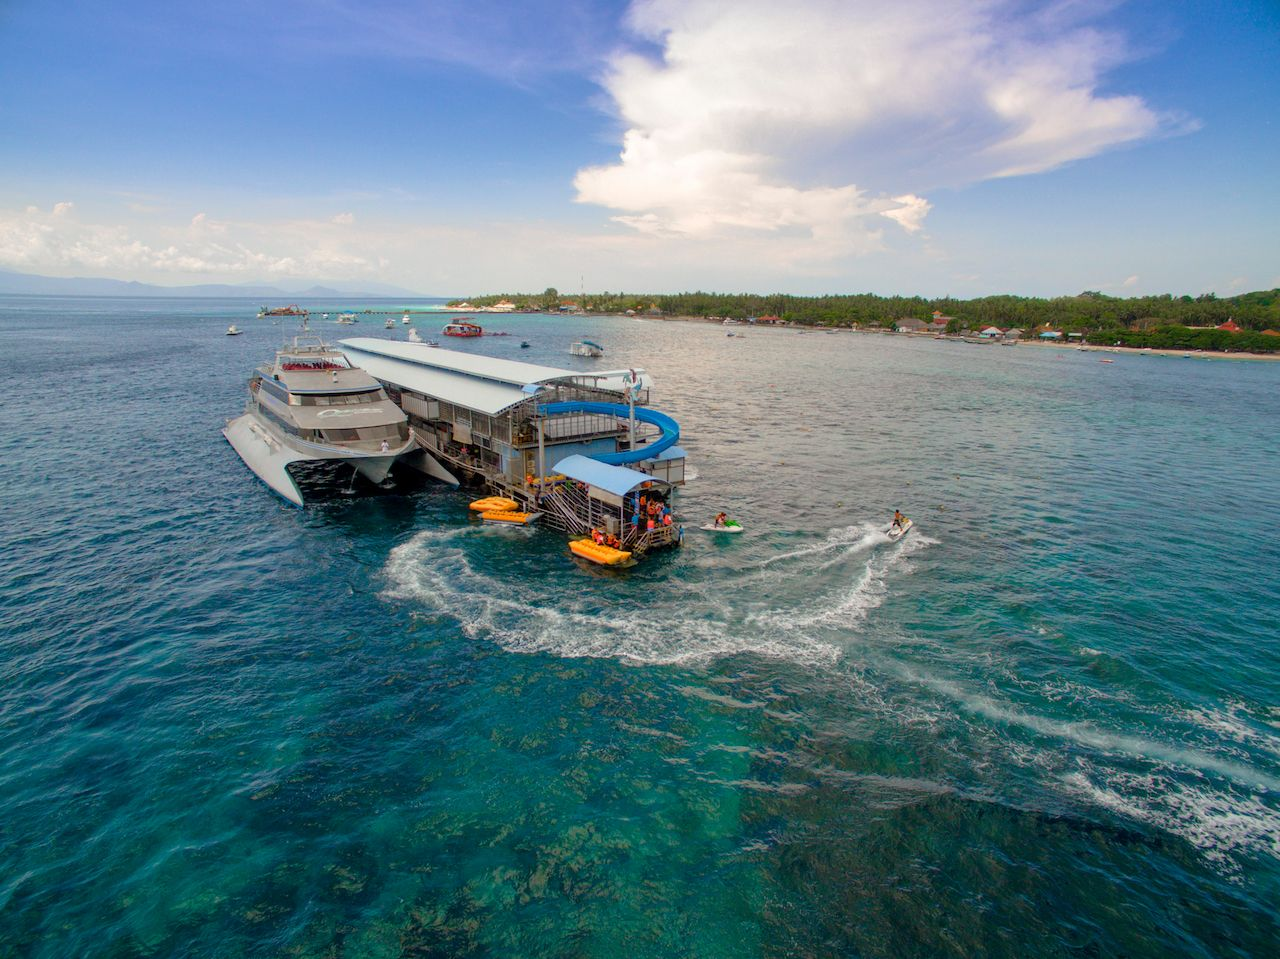 Quicksilver boats taking tourists on Lembongan to Nusa Penida